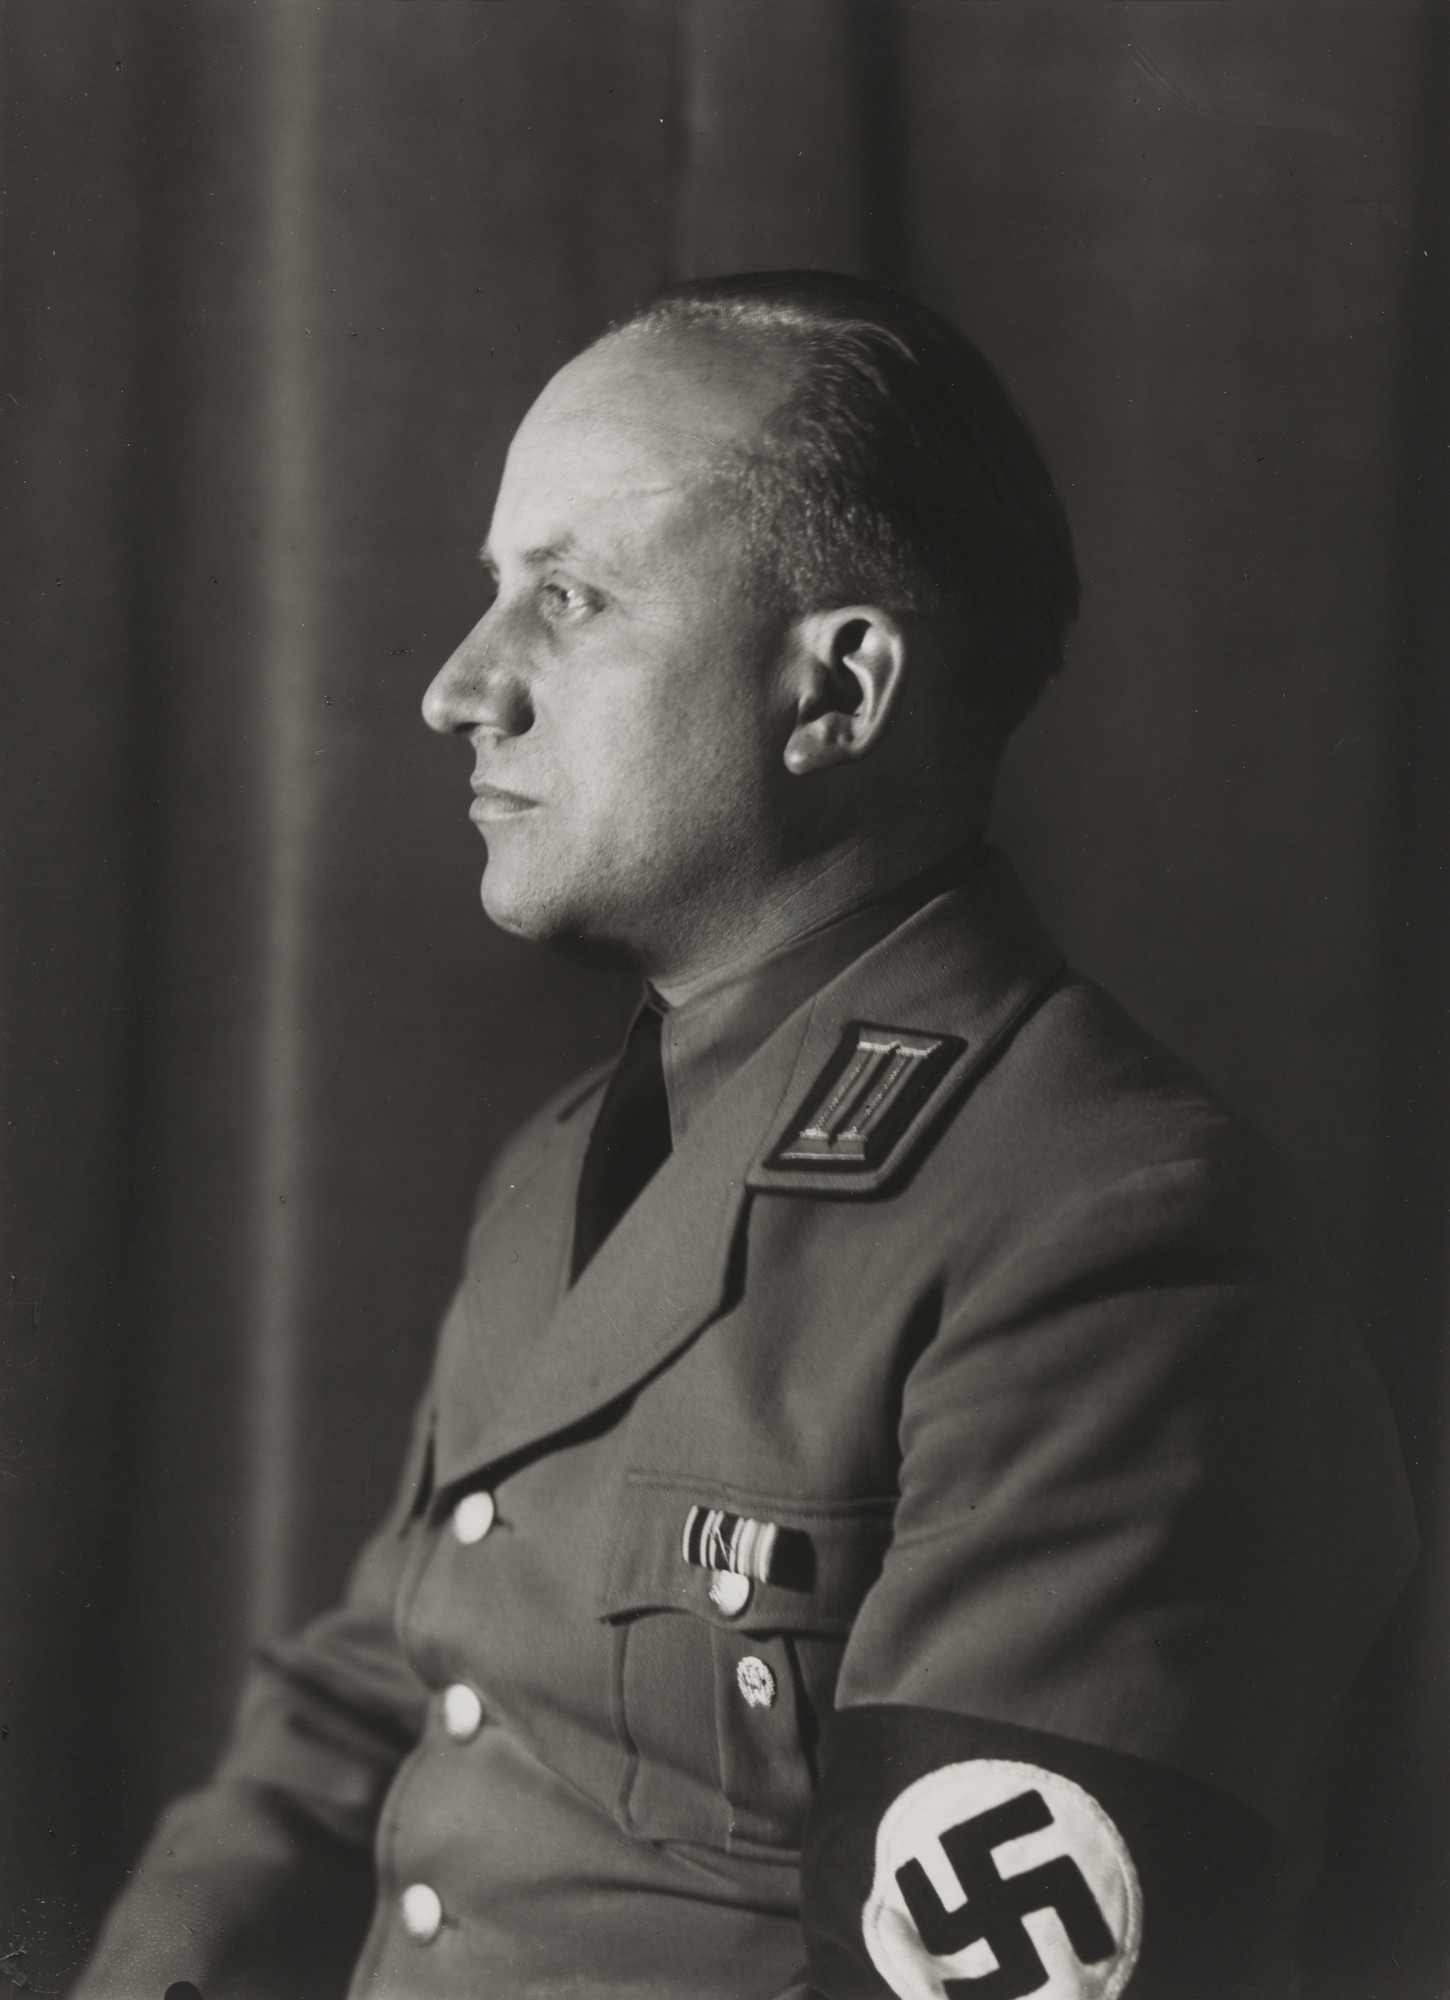 August Sander. National Socialist, Head of Department of Culture. c. 1938